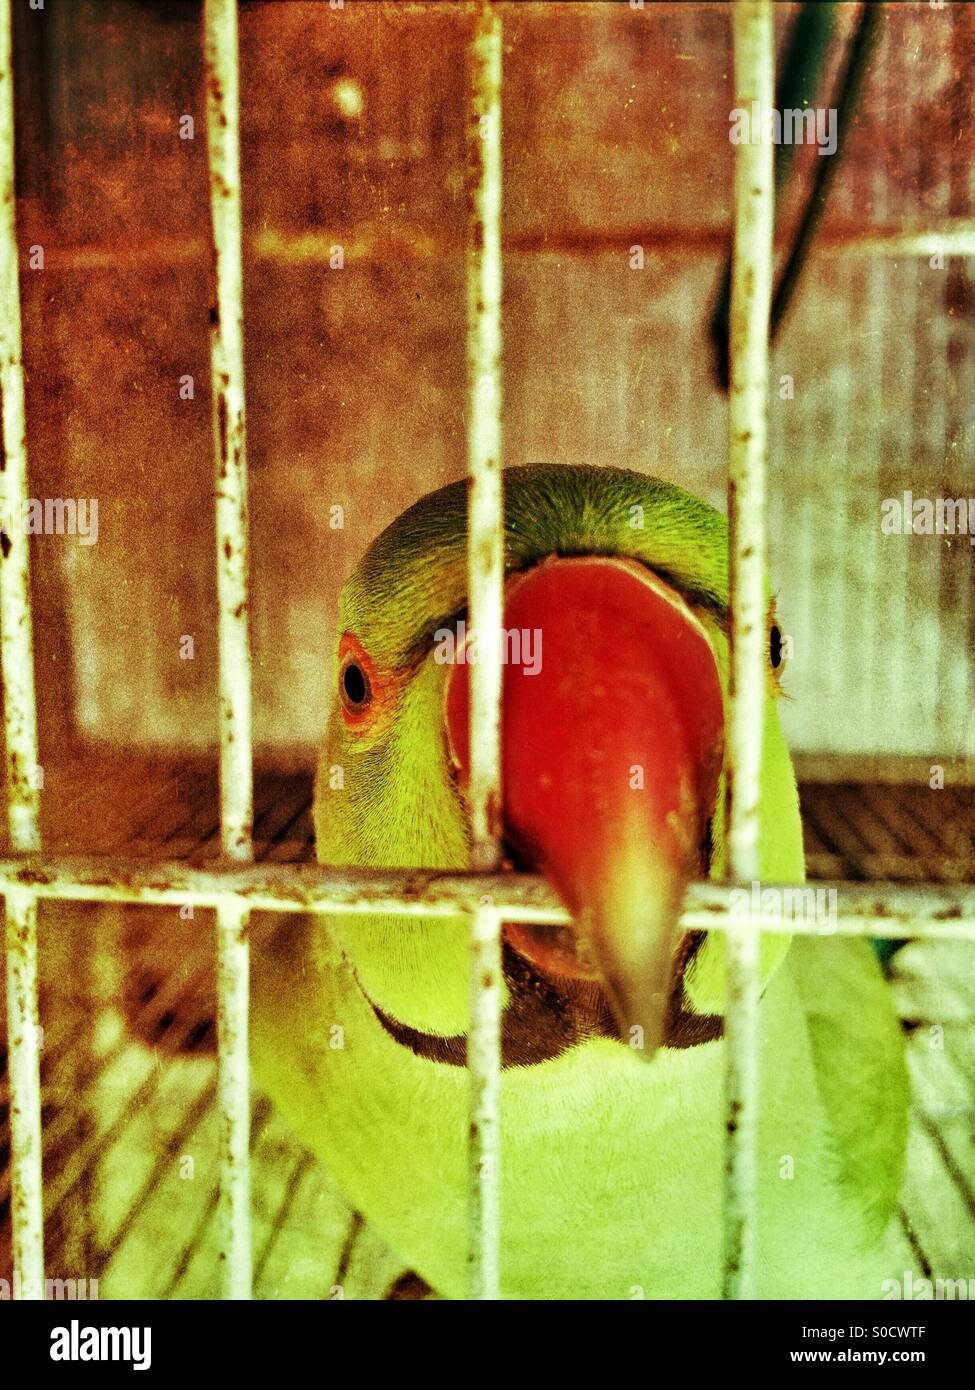 Parrot with red beak biting cage bars in Kharian Pakistan - Stock Image